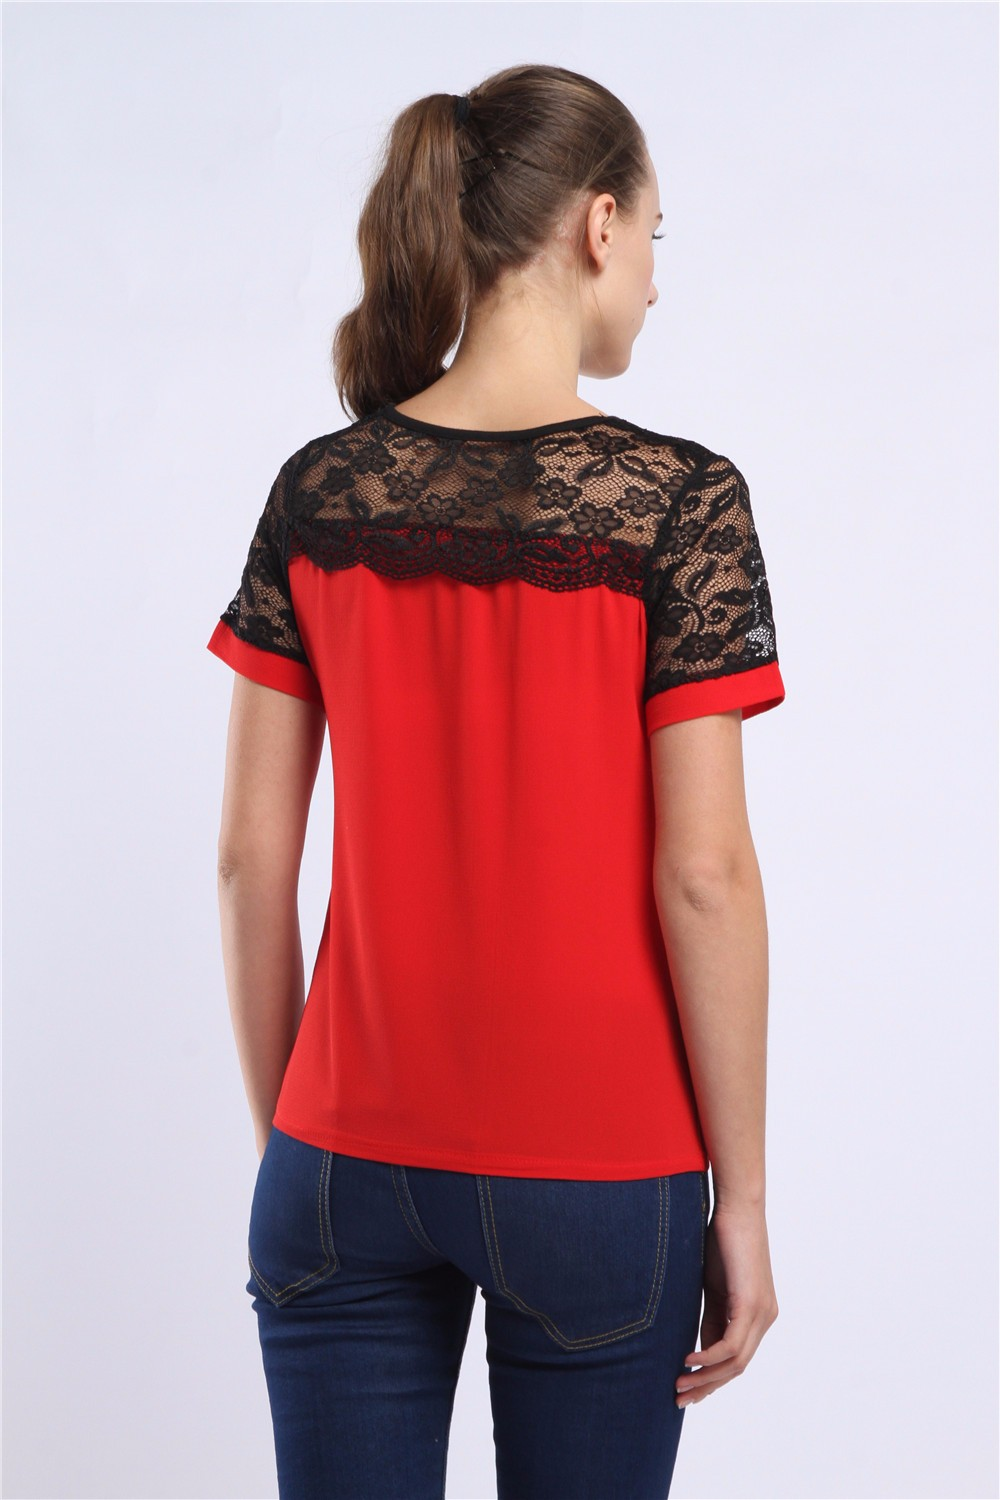 Women Blouses Summer Lace Chiffon Blouse Casual Blusa Feminina Tops Fashion Chemise Femme Shirts Plus Size 5XL Red White Pink 34